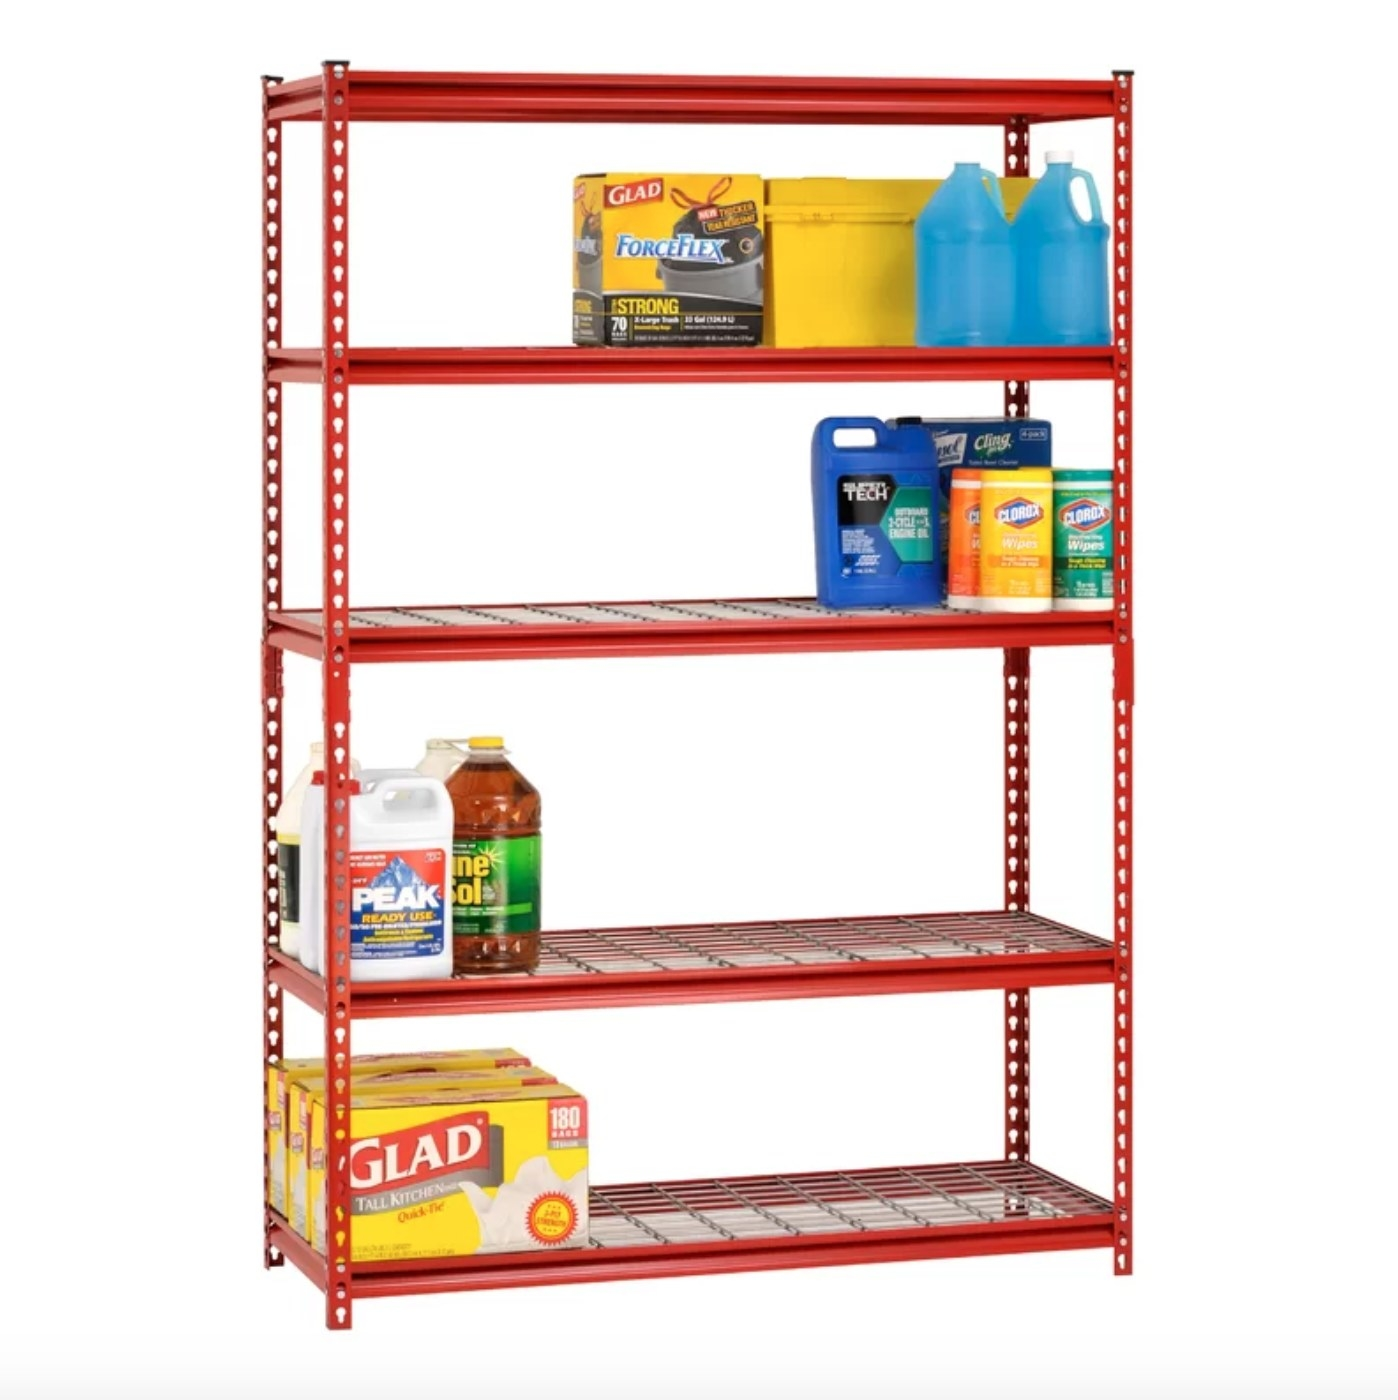 The shelving unit in red